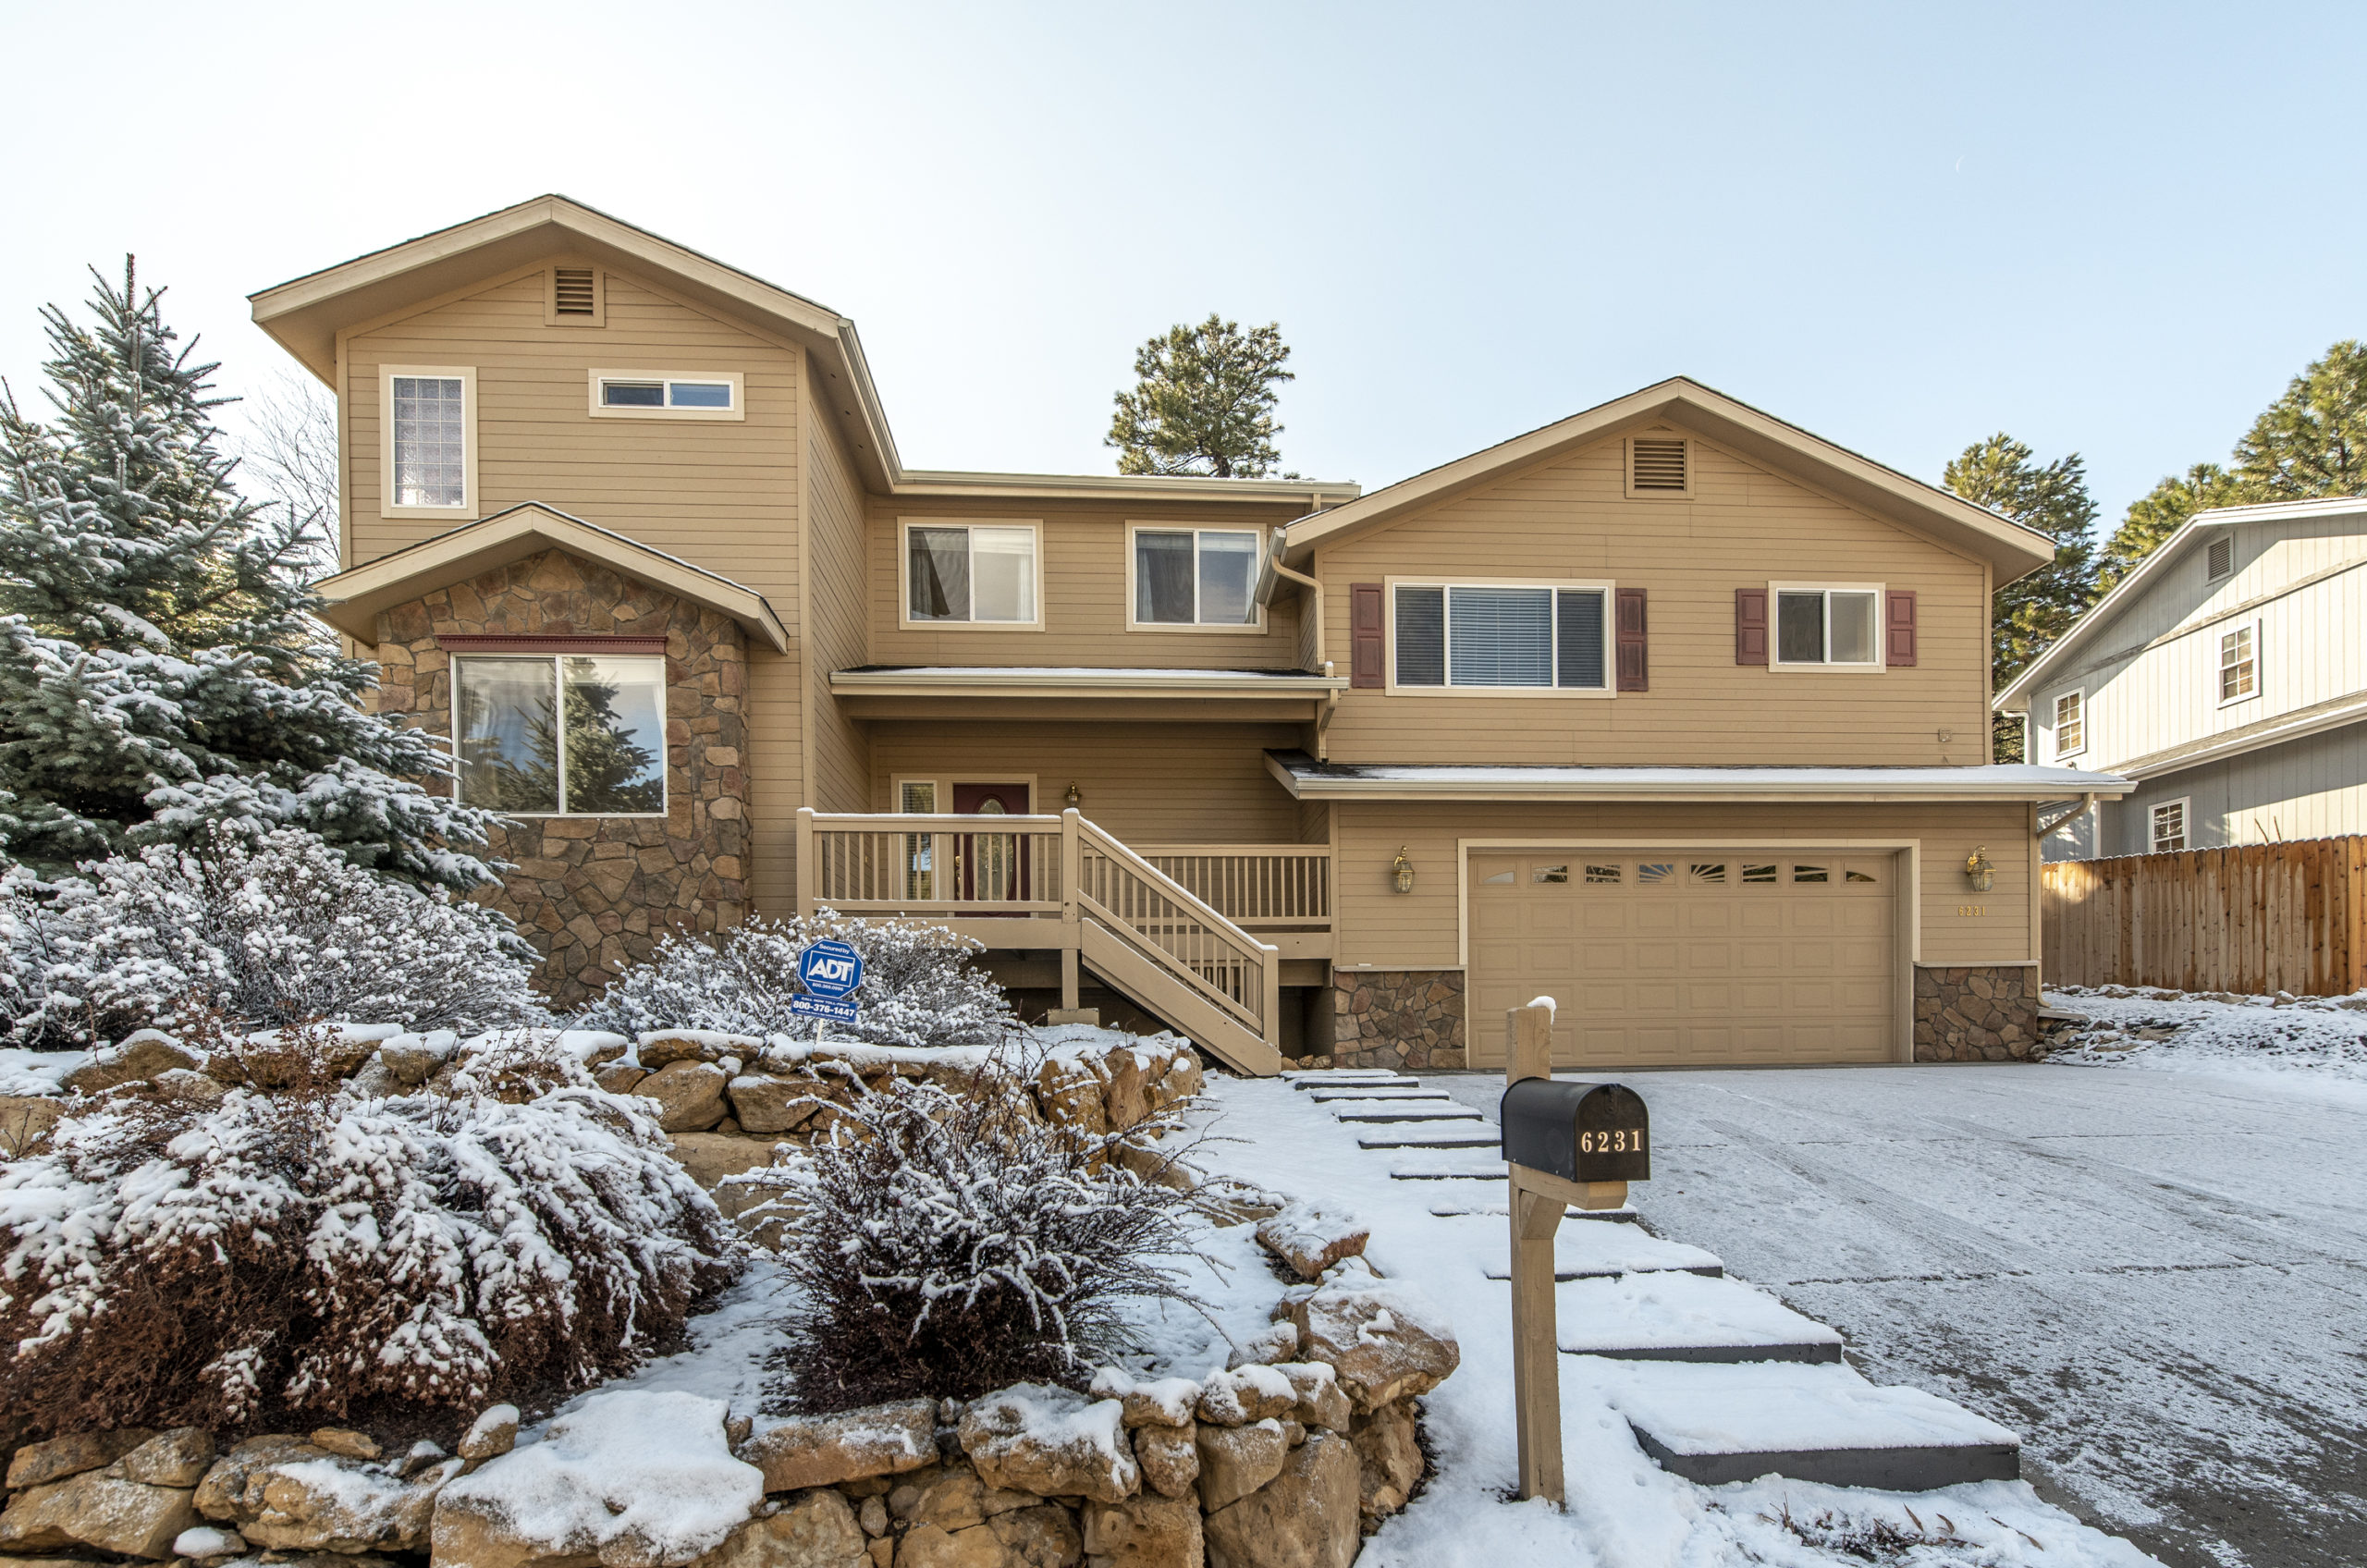 6231 E Abineau Canyon Dr. – Sold!